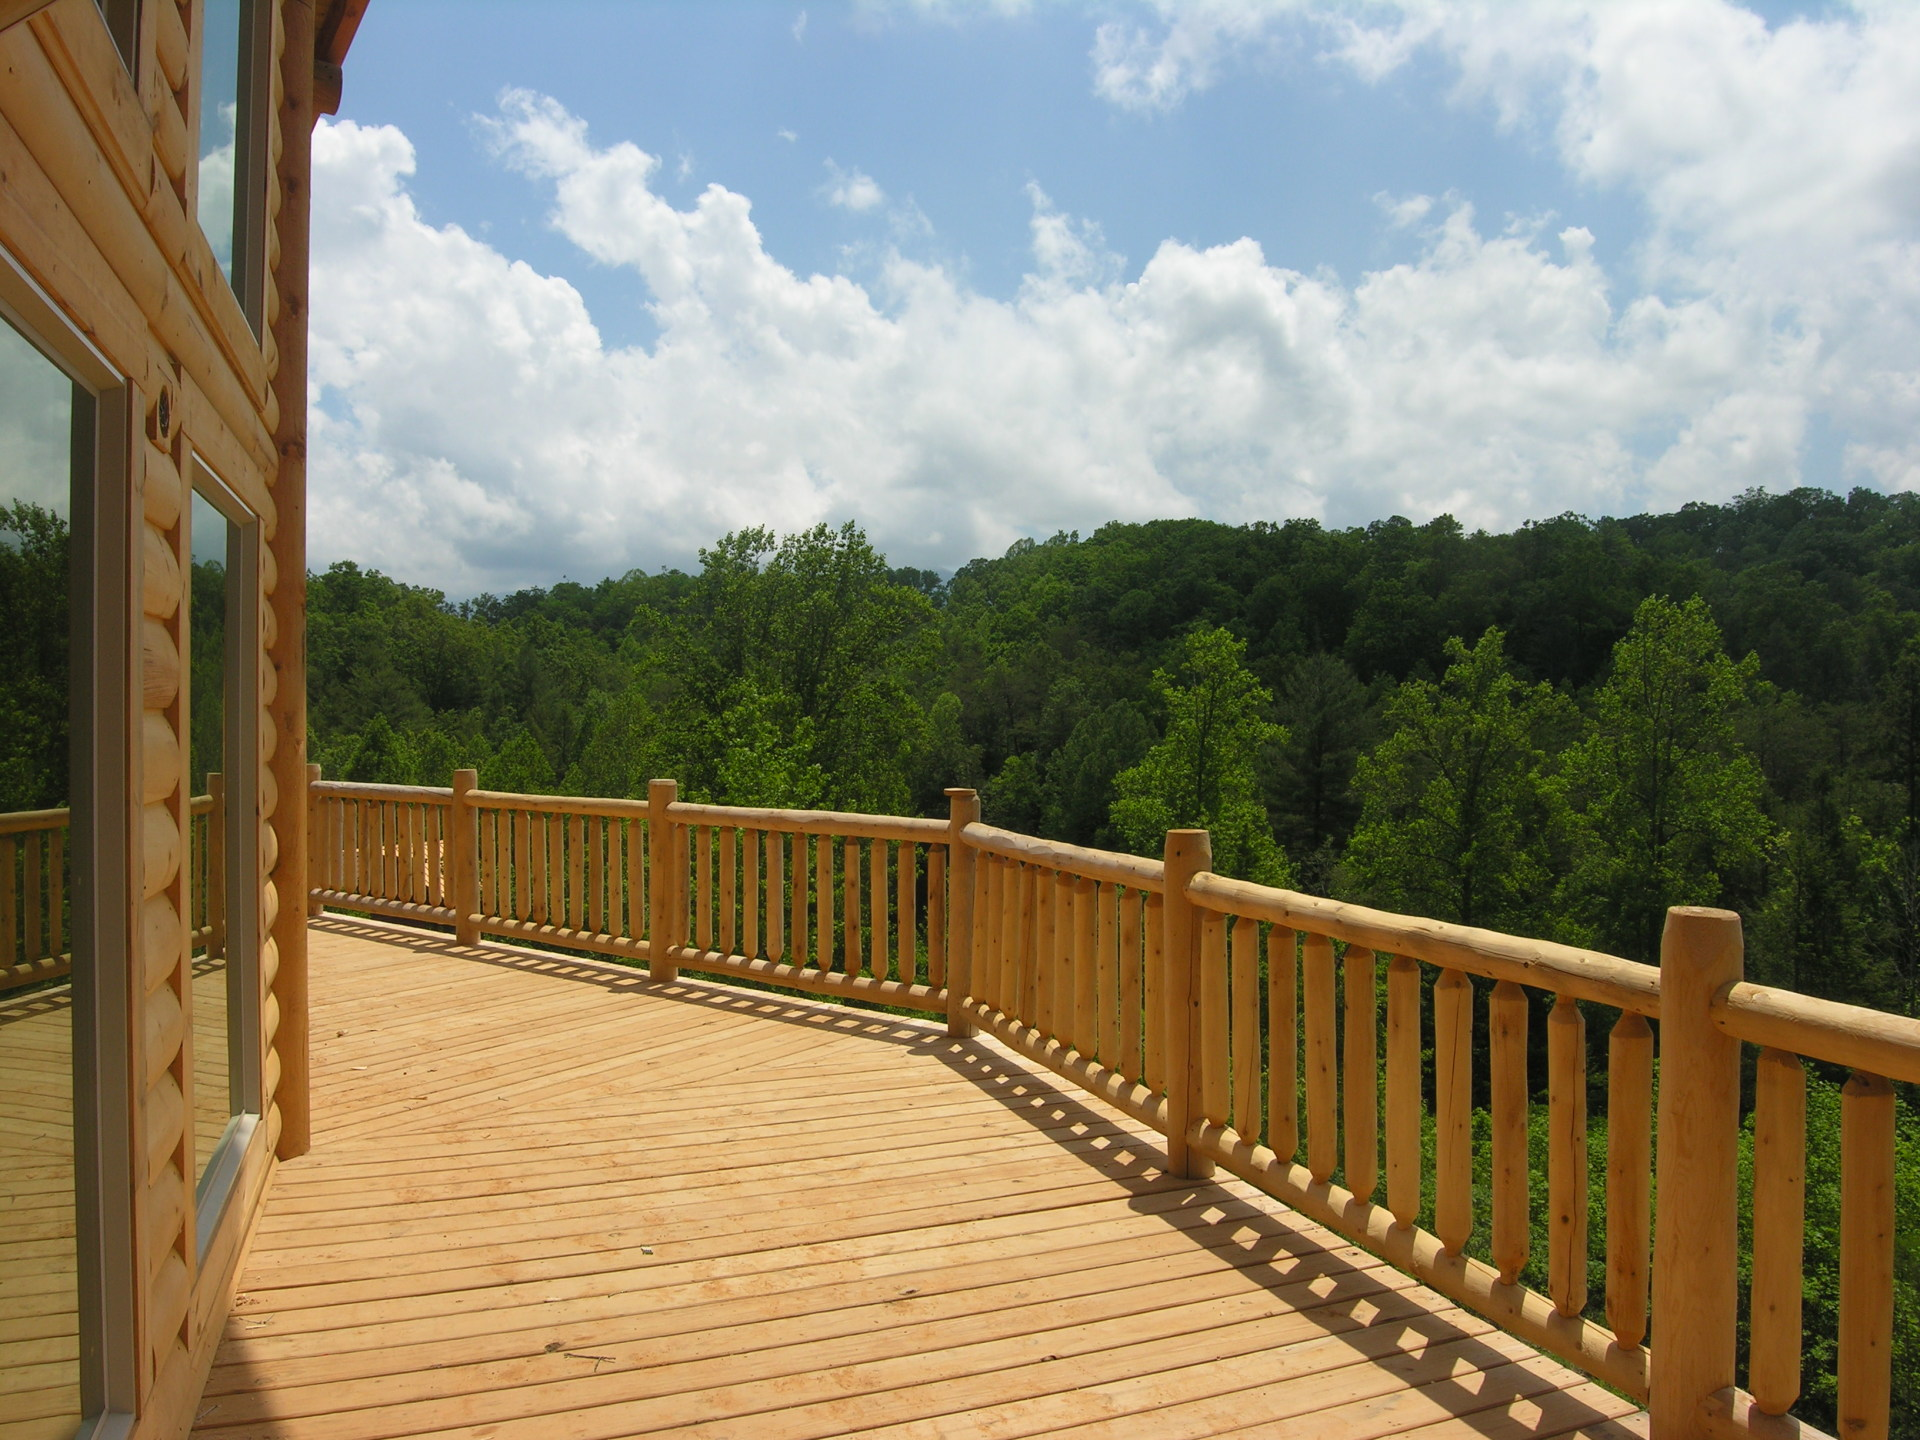 View from the front deck